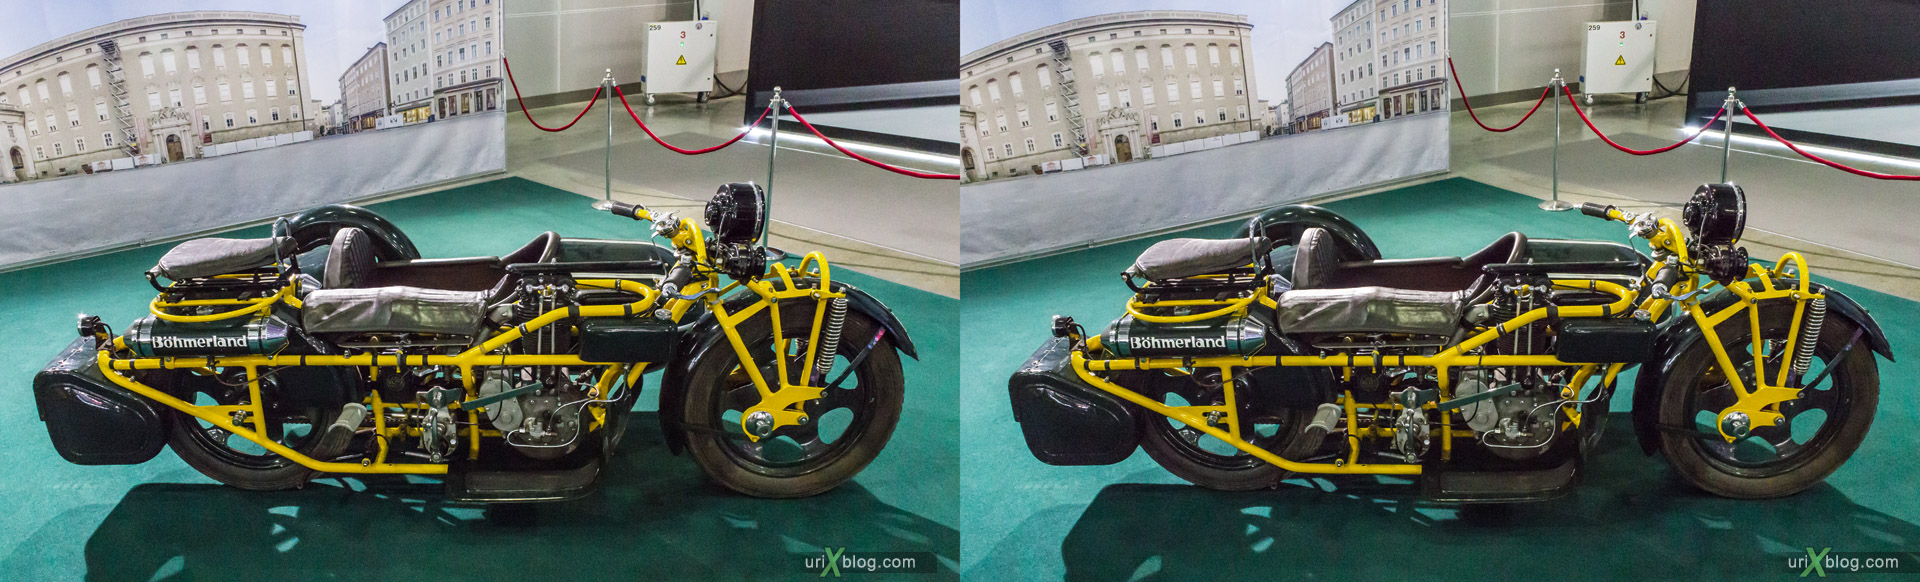 2014, motorcycle, motorbike, 1930 Böhmerland, Moscow International Automobile Salon, MIAS, Crocus Expo, Moscow, Russia, augest, 3D, stereo pair, cross-eyed, crossview, cross view stereo pair, stereoscopic